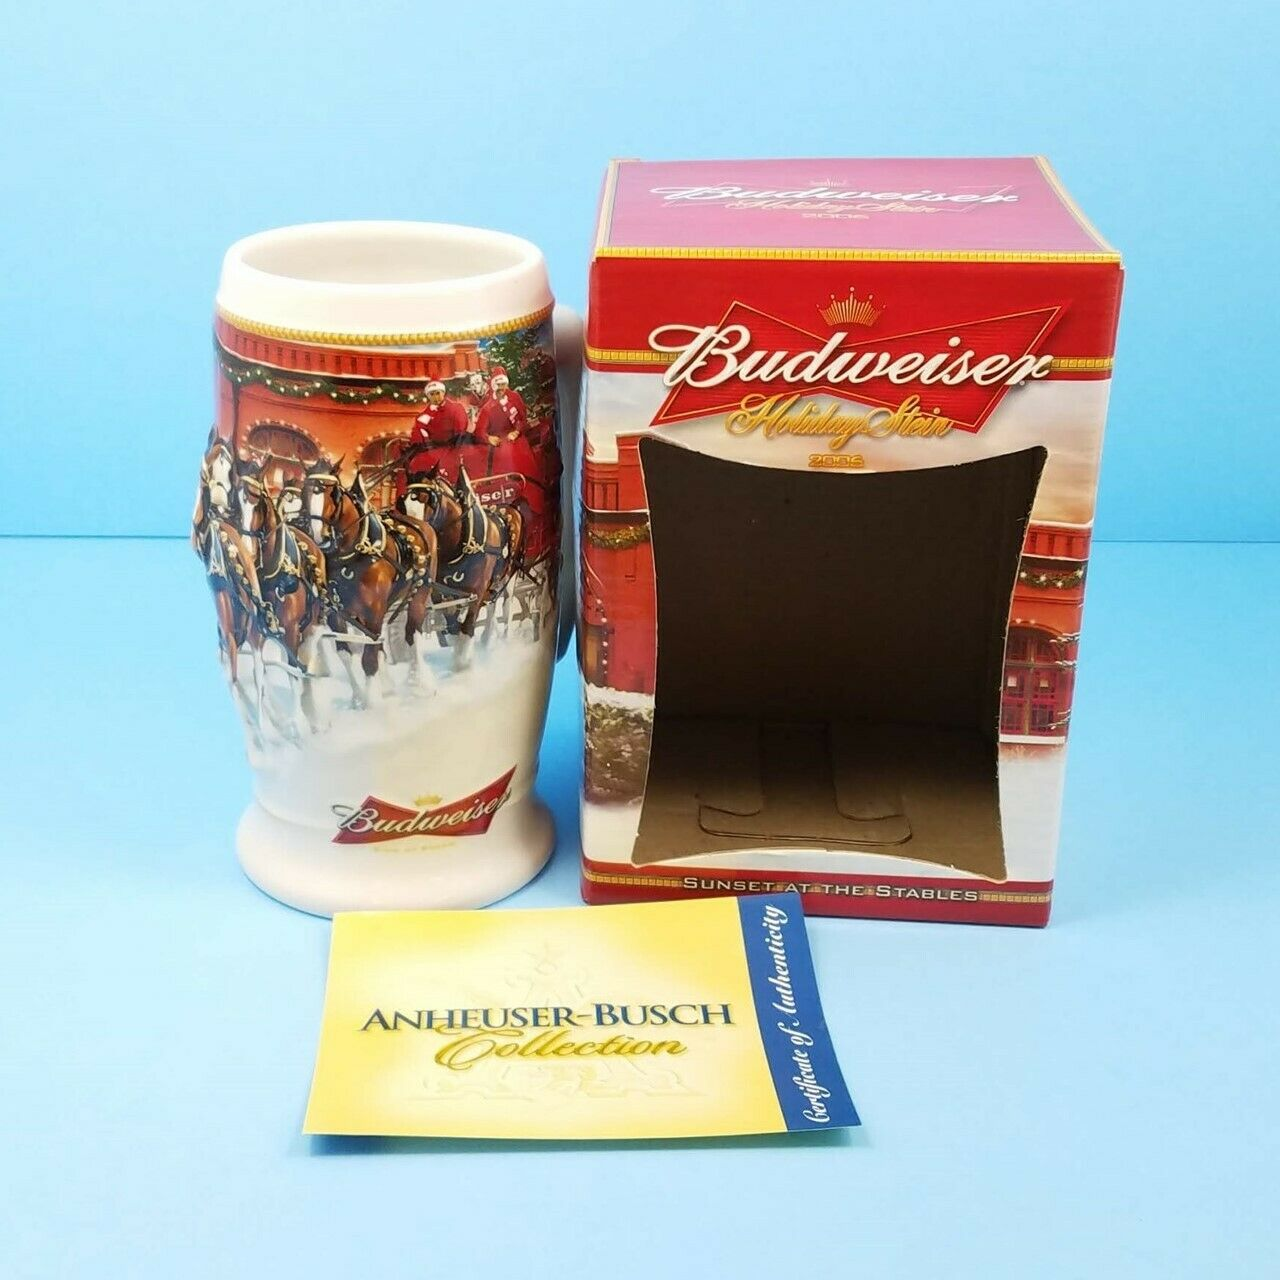 2006 Budweiser Stein Holiday Mug Sunset at The Stables with Gift Box COA CS670